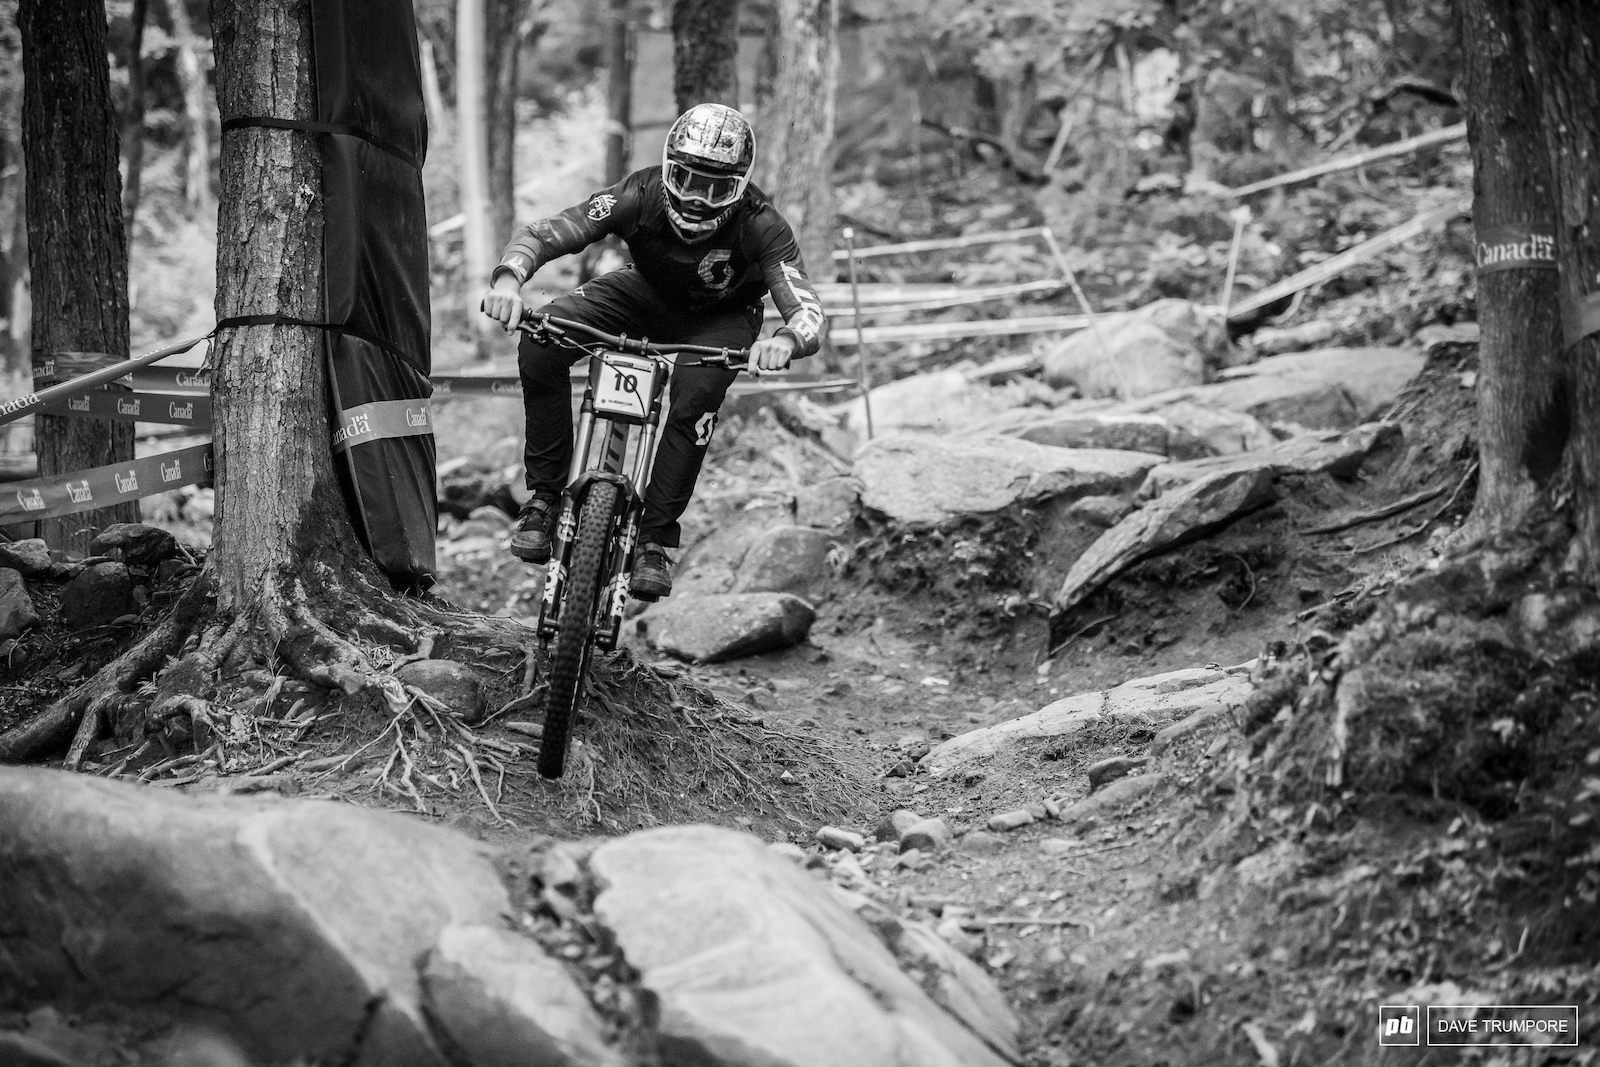 Dean Lucas has been having a stellar season and could certainly be a threat to medal at MSA